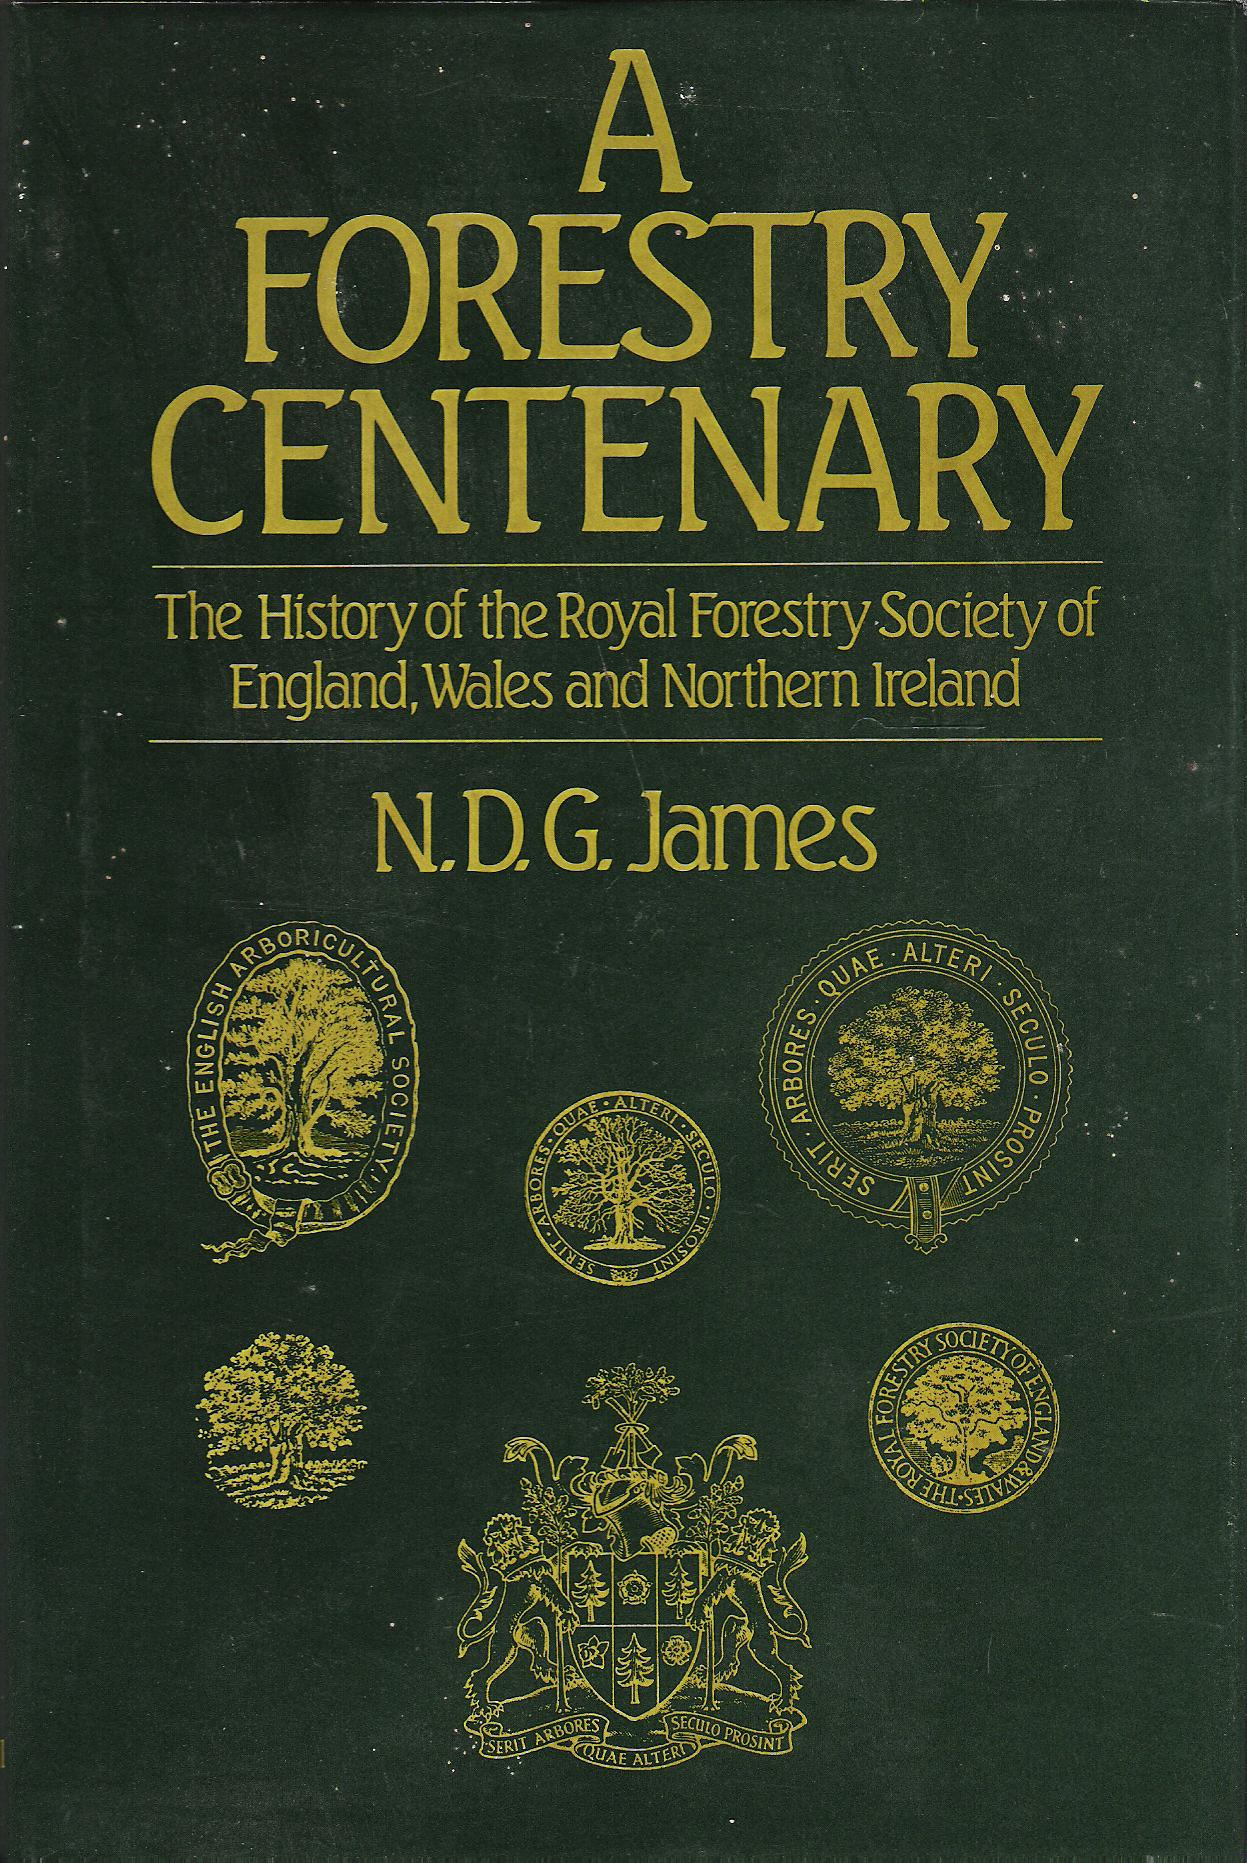 Image for A Forestry Centenary: The History of the Royal Forestry Society of England, Wales and Northern Ireland.